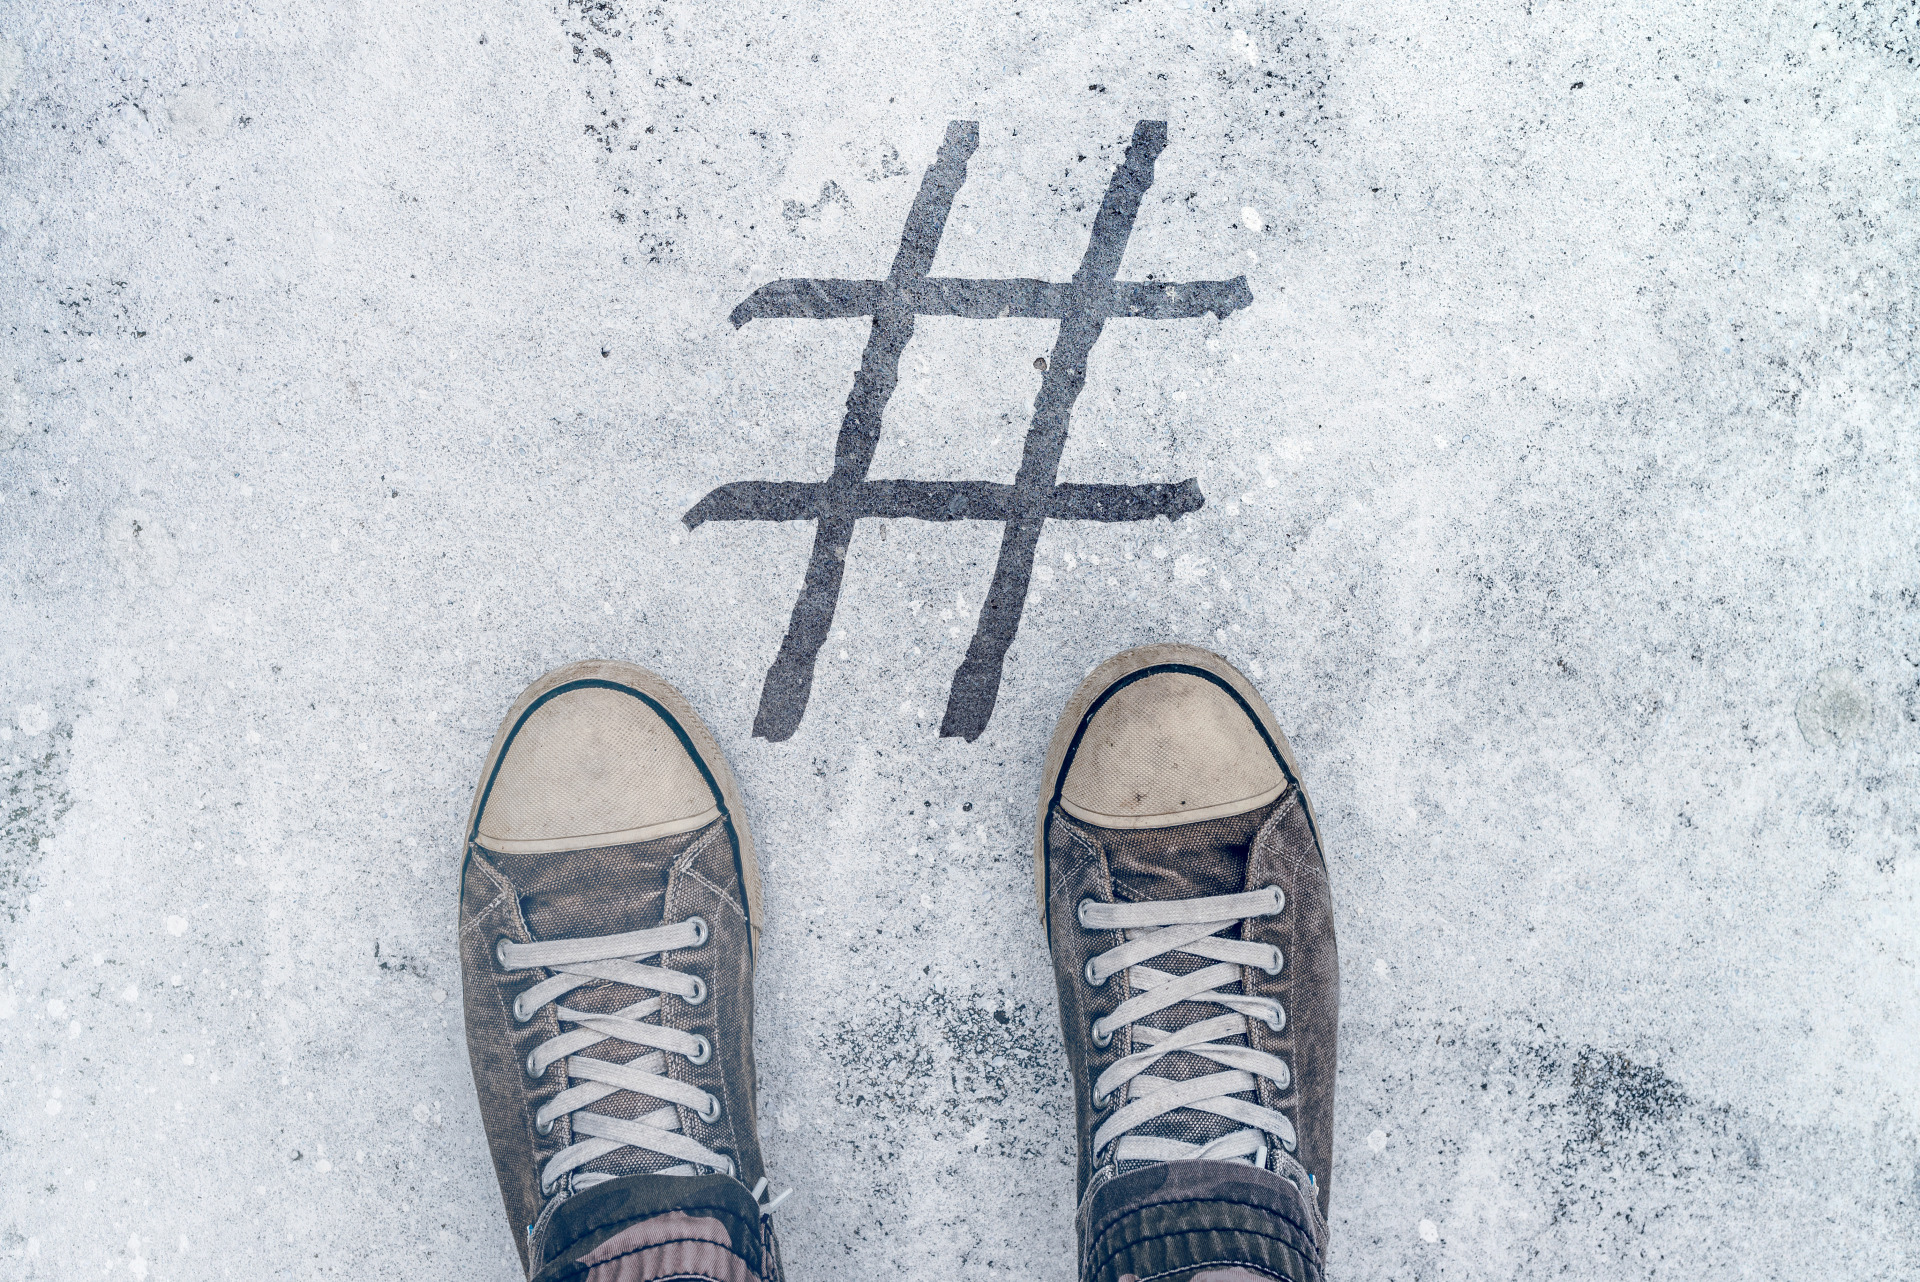 Shoes in front of a hashtag symbol - internet marketing baltimore - Eyler Creative